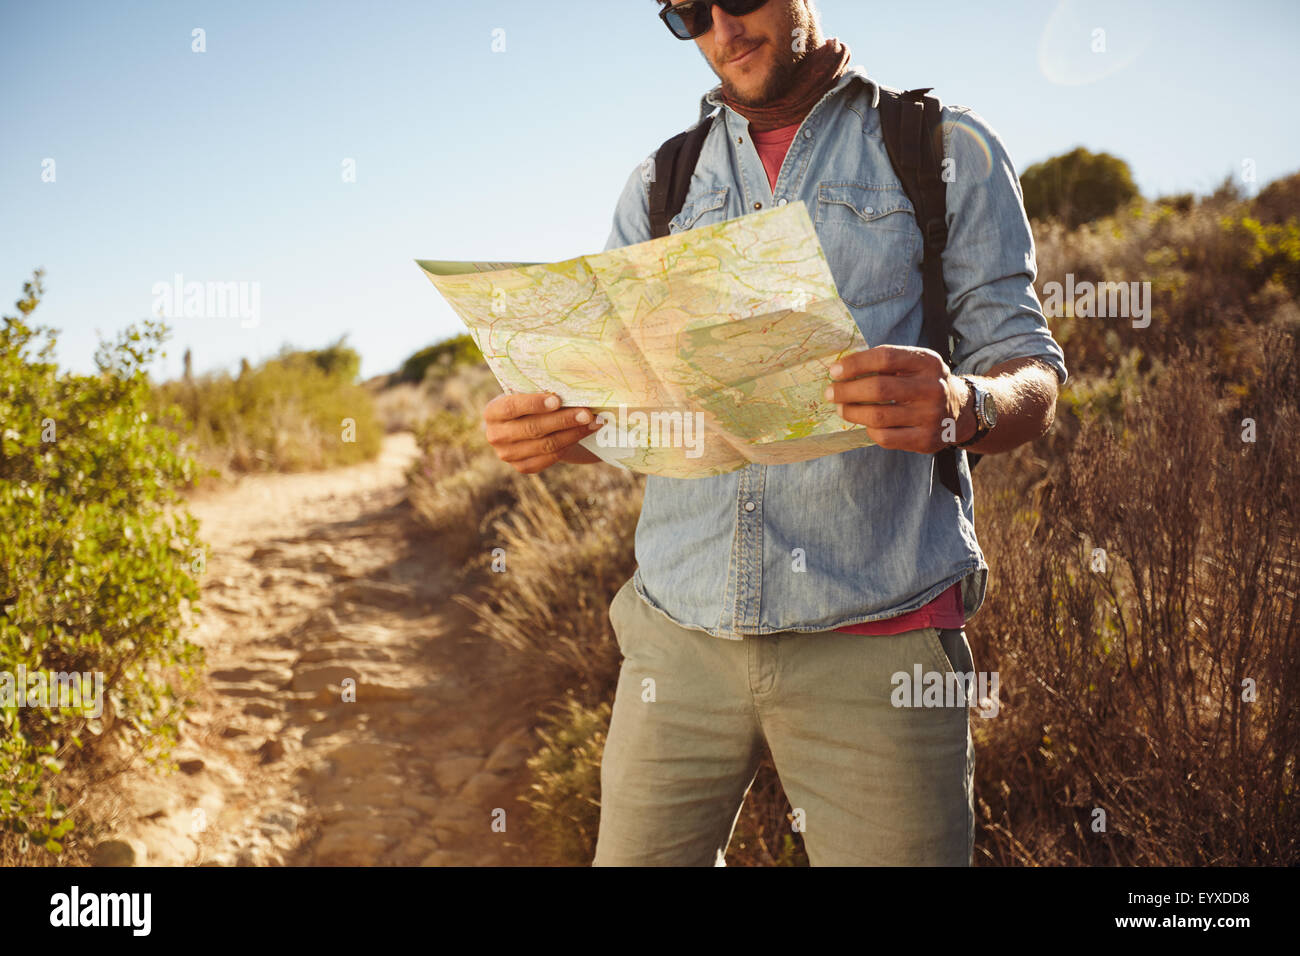 Shot of a man in countryside with a map, figuring out his orientation. Male hiker hiking in country. - Stock Image